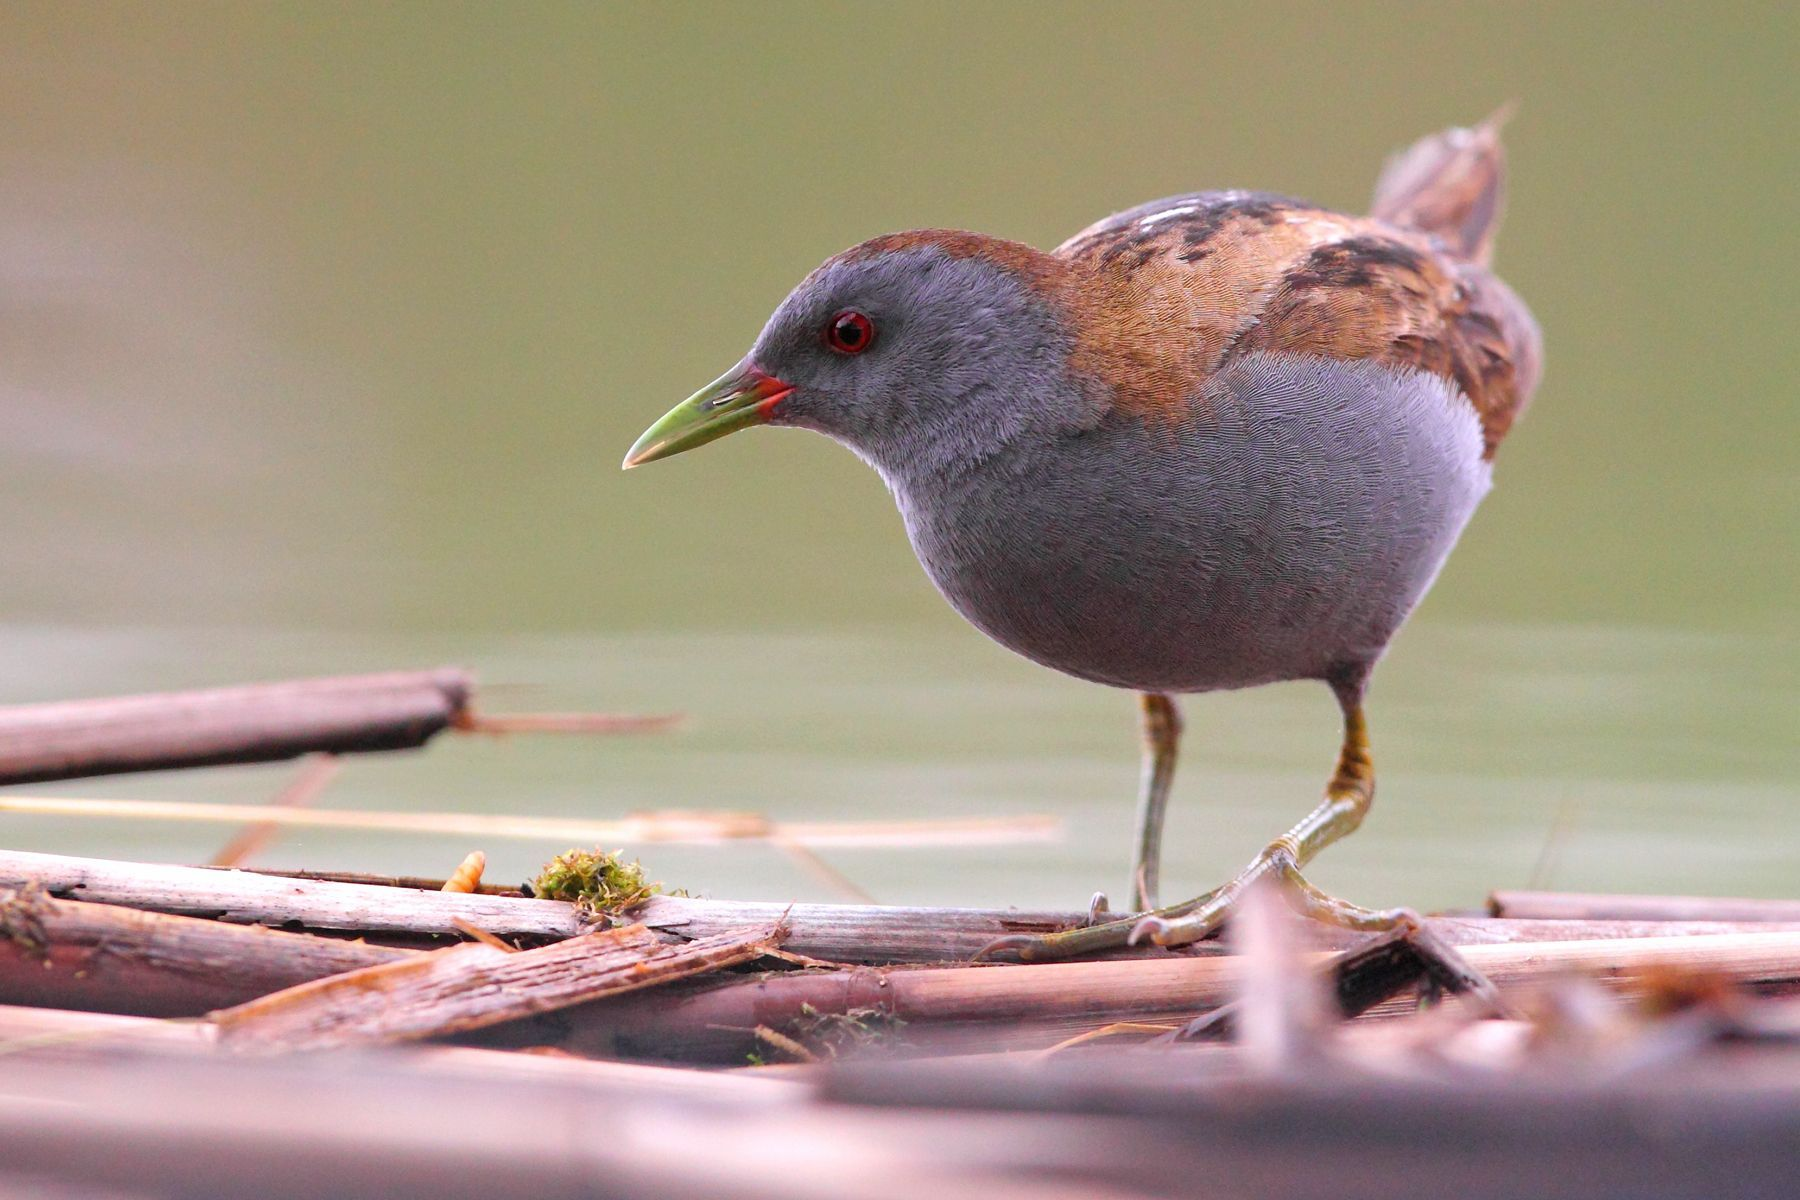 With luck a Little Crake will appear